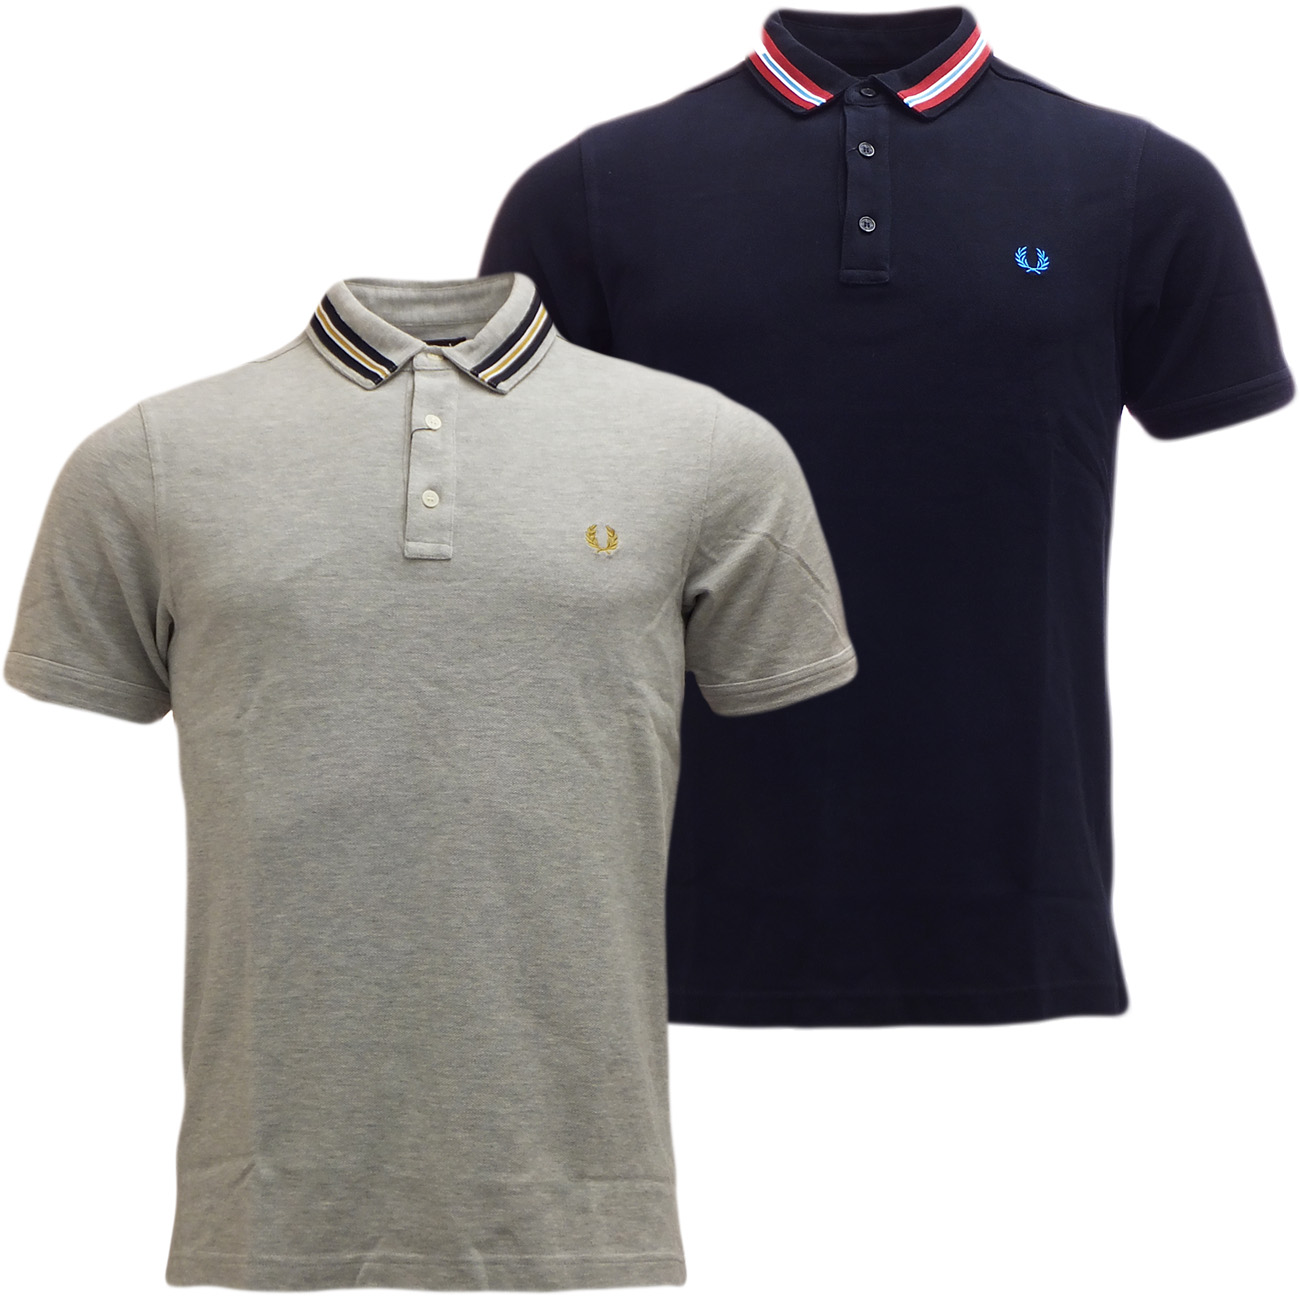 fred perry polo shirt stripe collar pique polo new polos mr h menswear. Black Bedroom Furniture Sets. Home Design Ideas